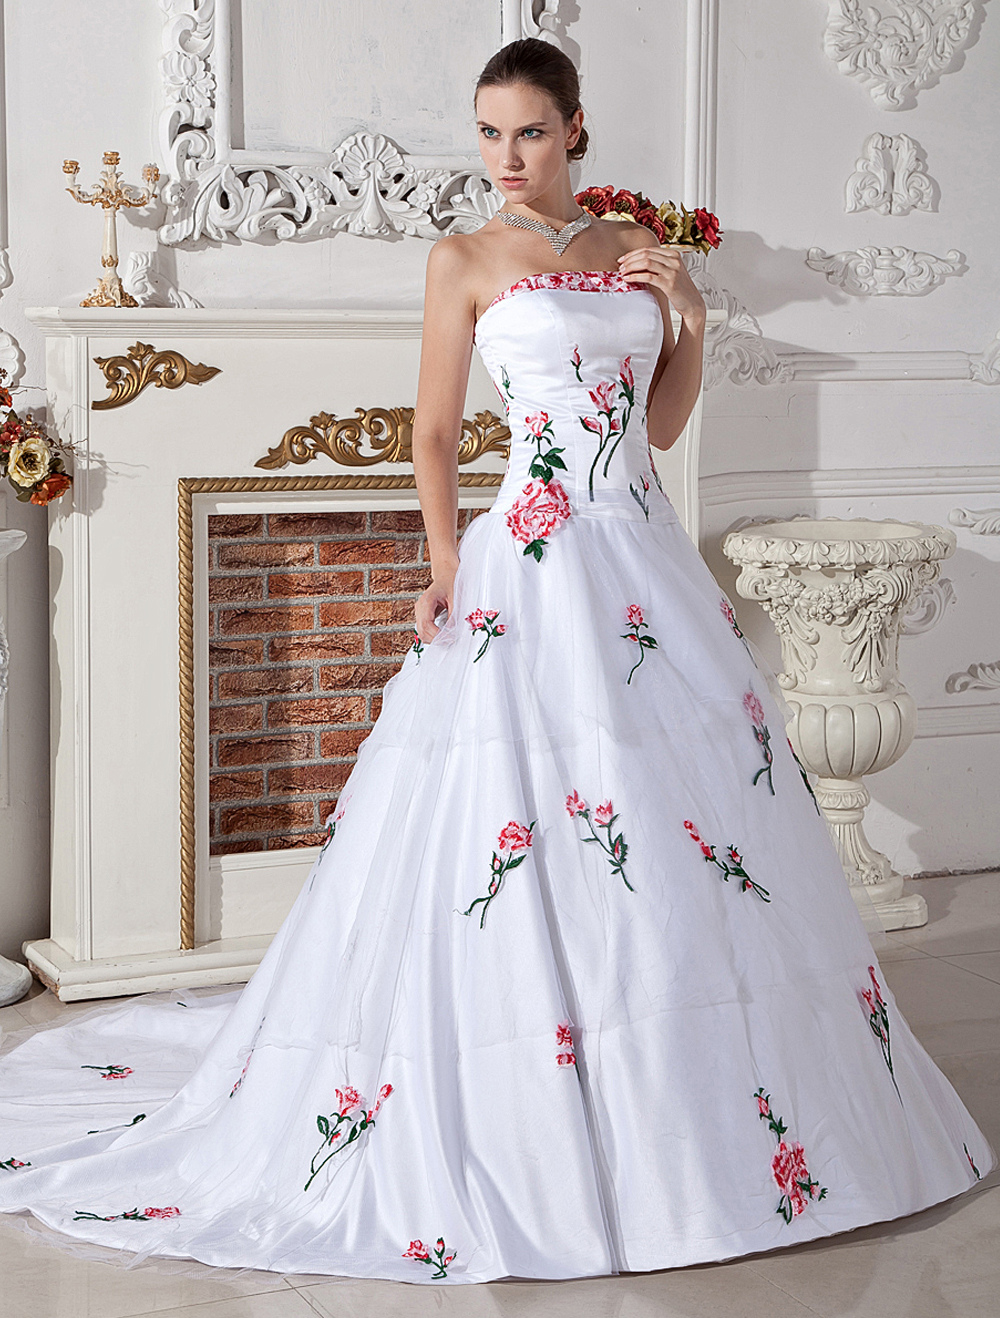 Beautiful White A-line Strapless Embroidery Satin Organza Wedding Gown